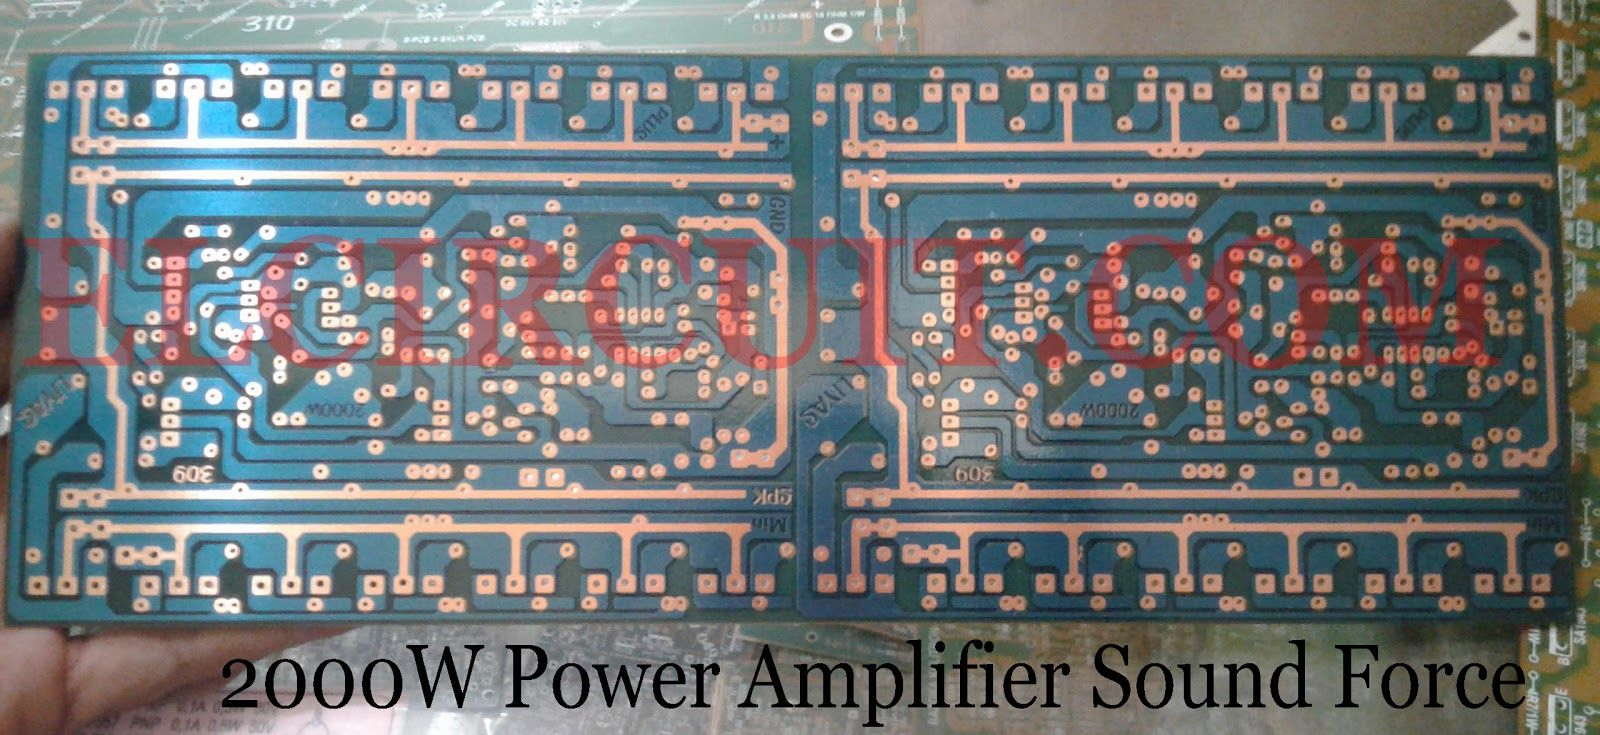 2000w Power Amplifier Circuit Complete Pcb Layout Electronic Class D Circuits And Diagram